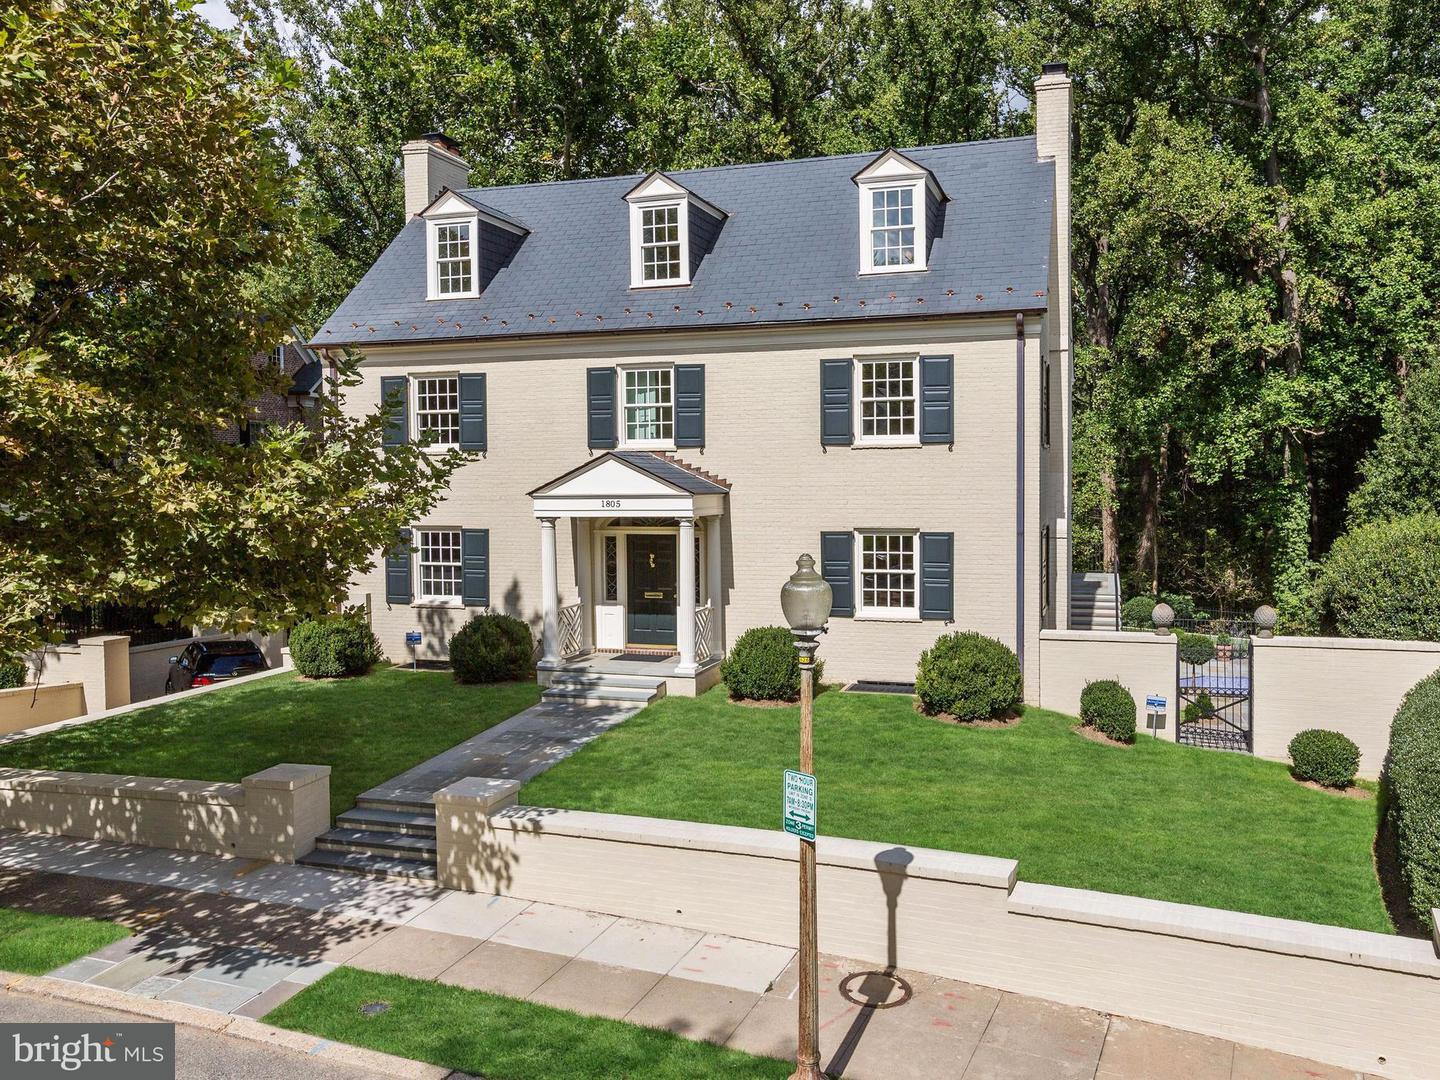 Single Family for Sale at 1805 Hoban Rd NW Washington, District Of Columbia 20007 United States